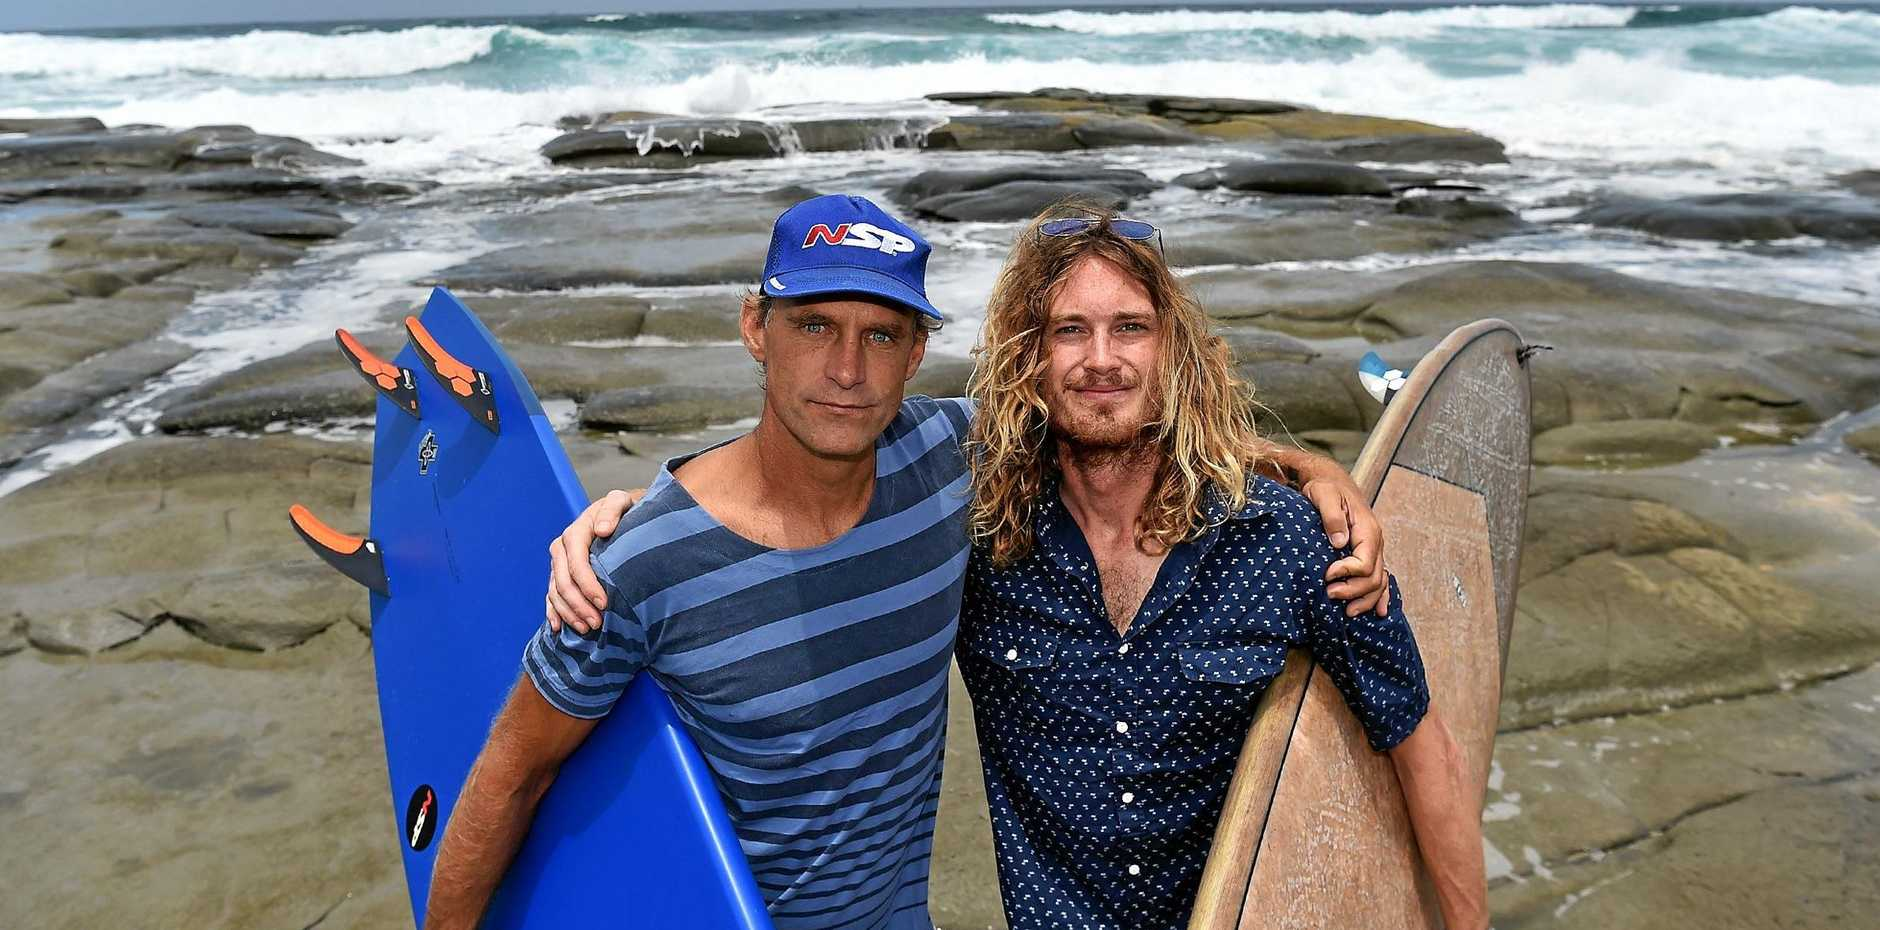 Paul Jones (left) and Johnathon Woods want inexperienced surfers to be more aware their abilities before heading into the ocean.